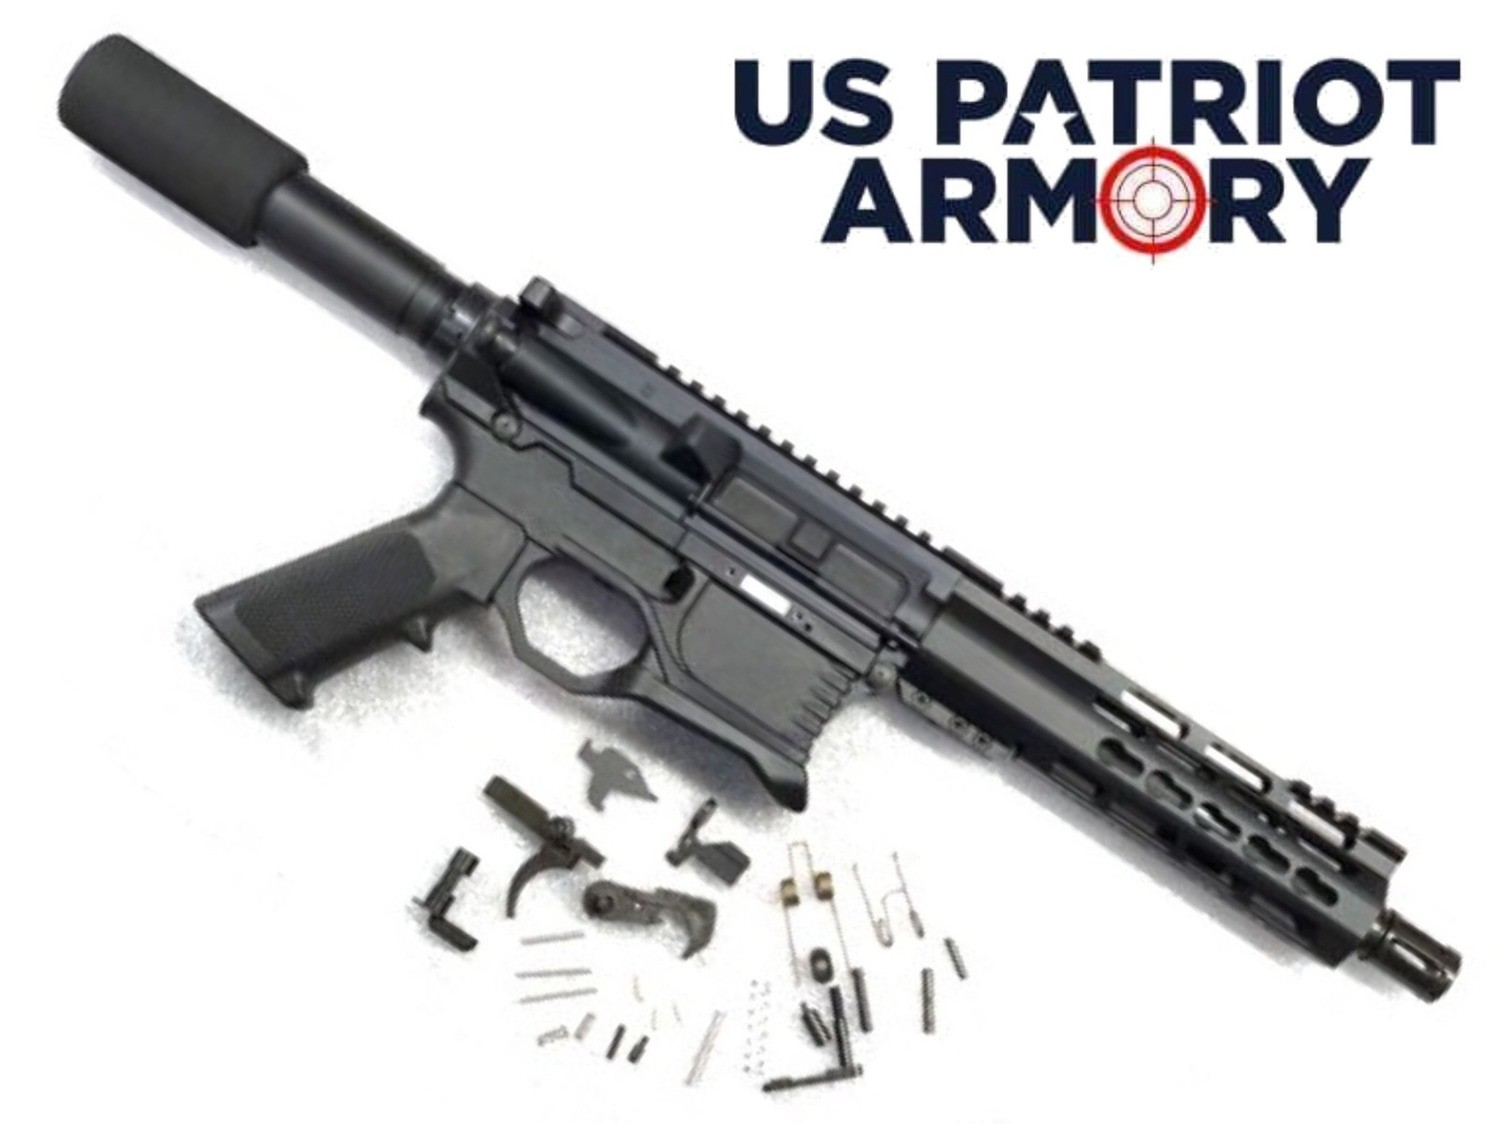 "SALE OVER STOCK!!! AR-15 80% Pistol Kit Your pick: 5.56 NATO, 300 Black-Out, 7.62x39 7.5"" Barrel w/ BCG, Charging Handle, Lower Parts Kit & P80 80% Lower"